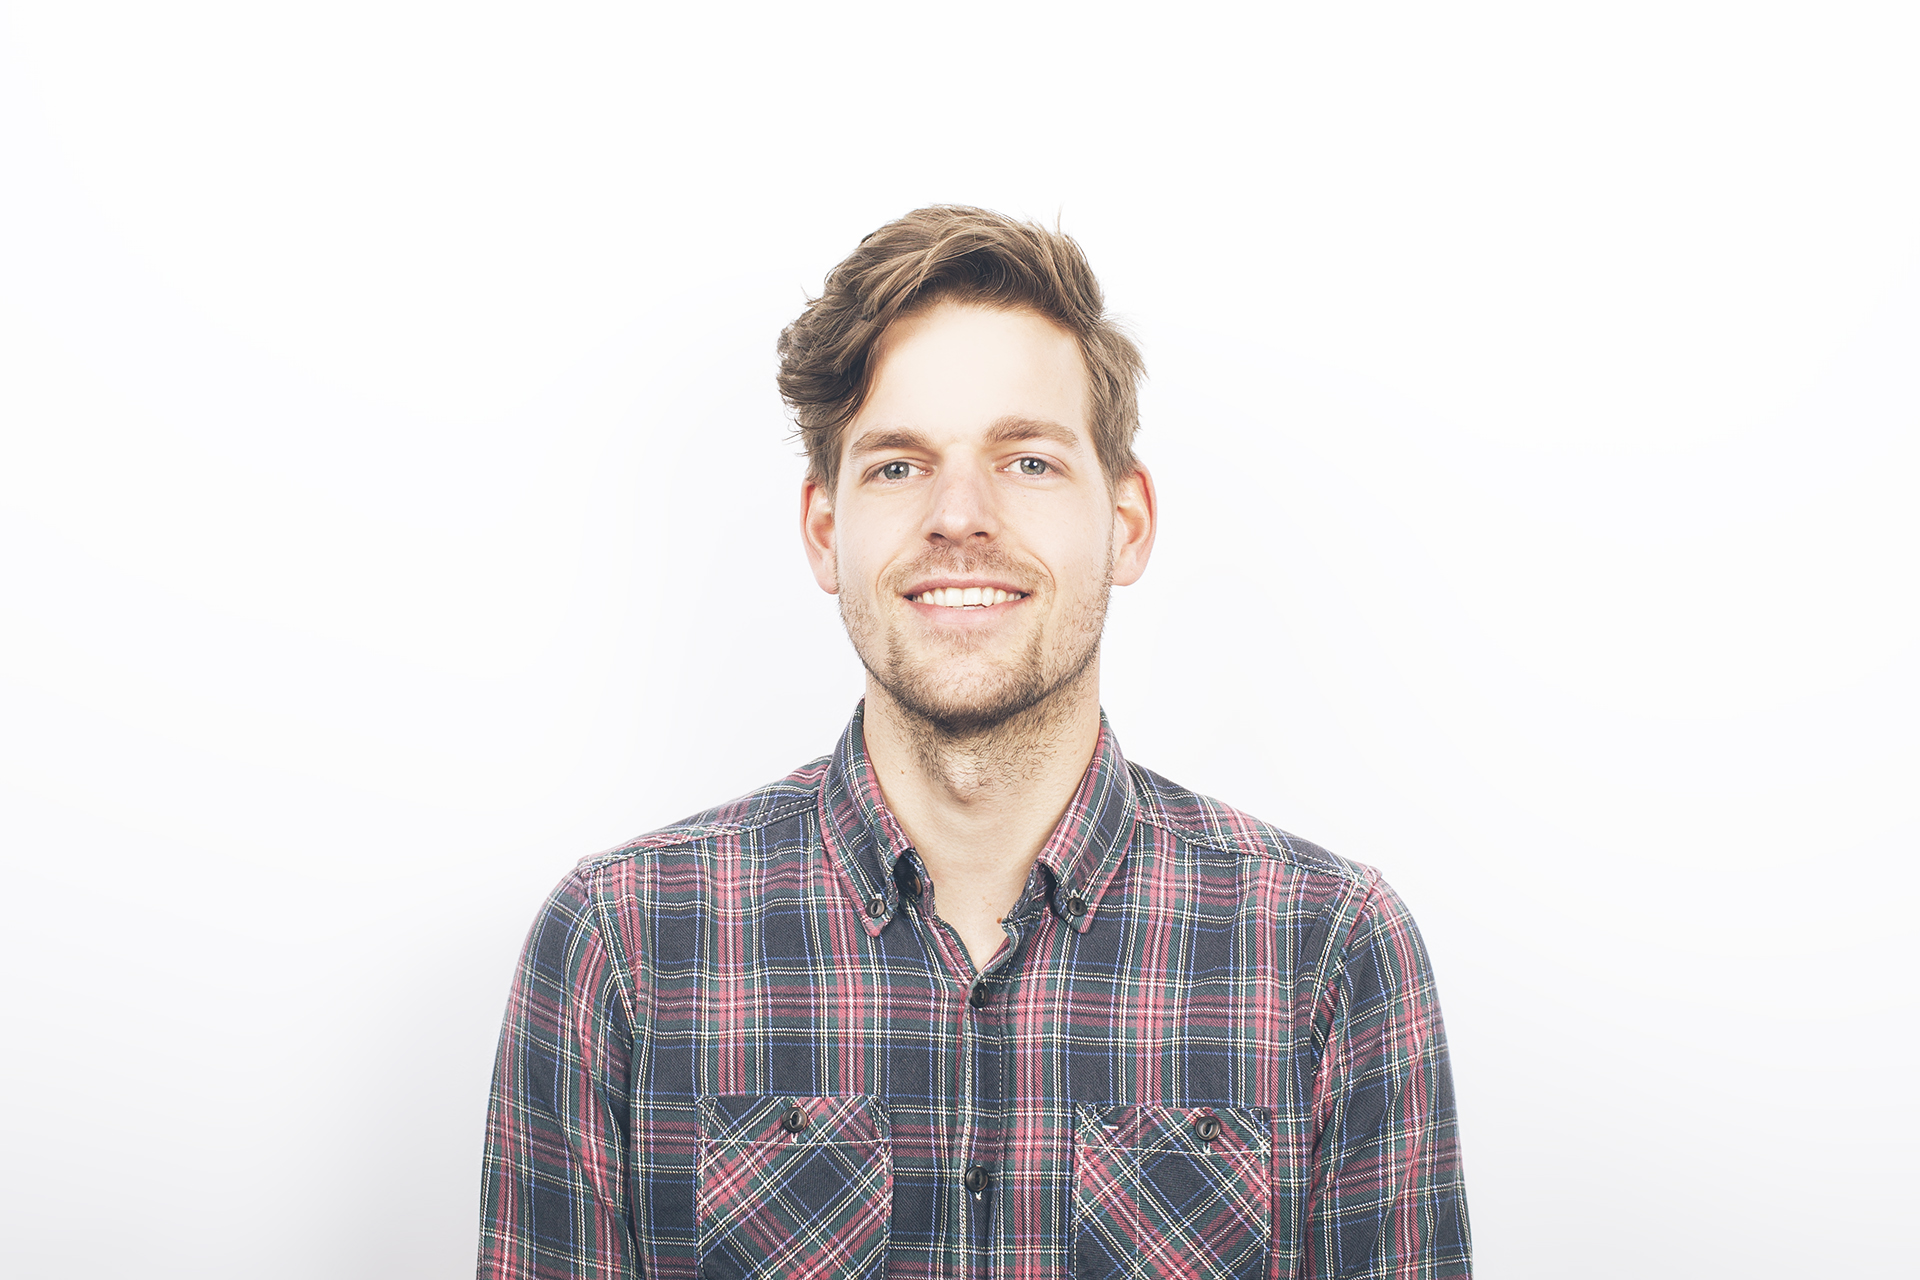 Profile picture of Thomas Schrijer - Design director at WeTransfer